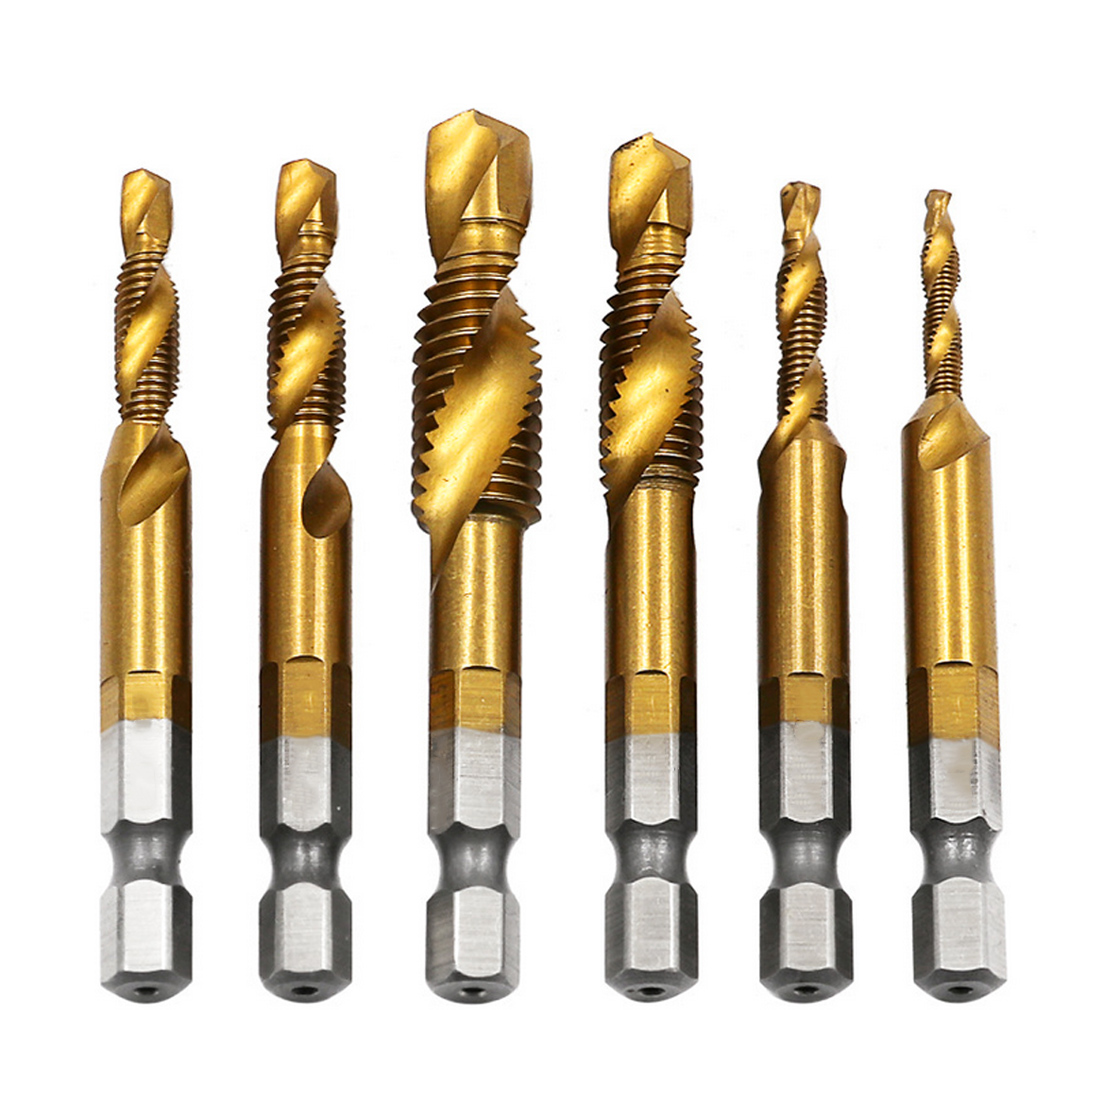 Screw Spiral Point Thread Kit Metric M3 M4 M5 M6 M8 M10 Metalworking Hex Shank Machine Taps Plug Hand Tap Drill Bits